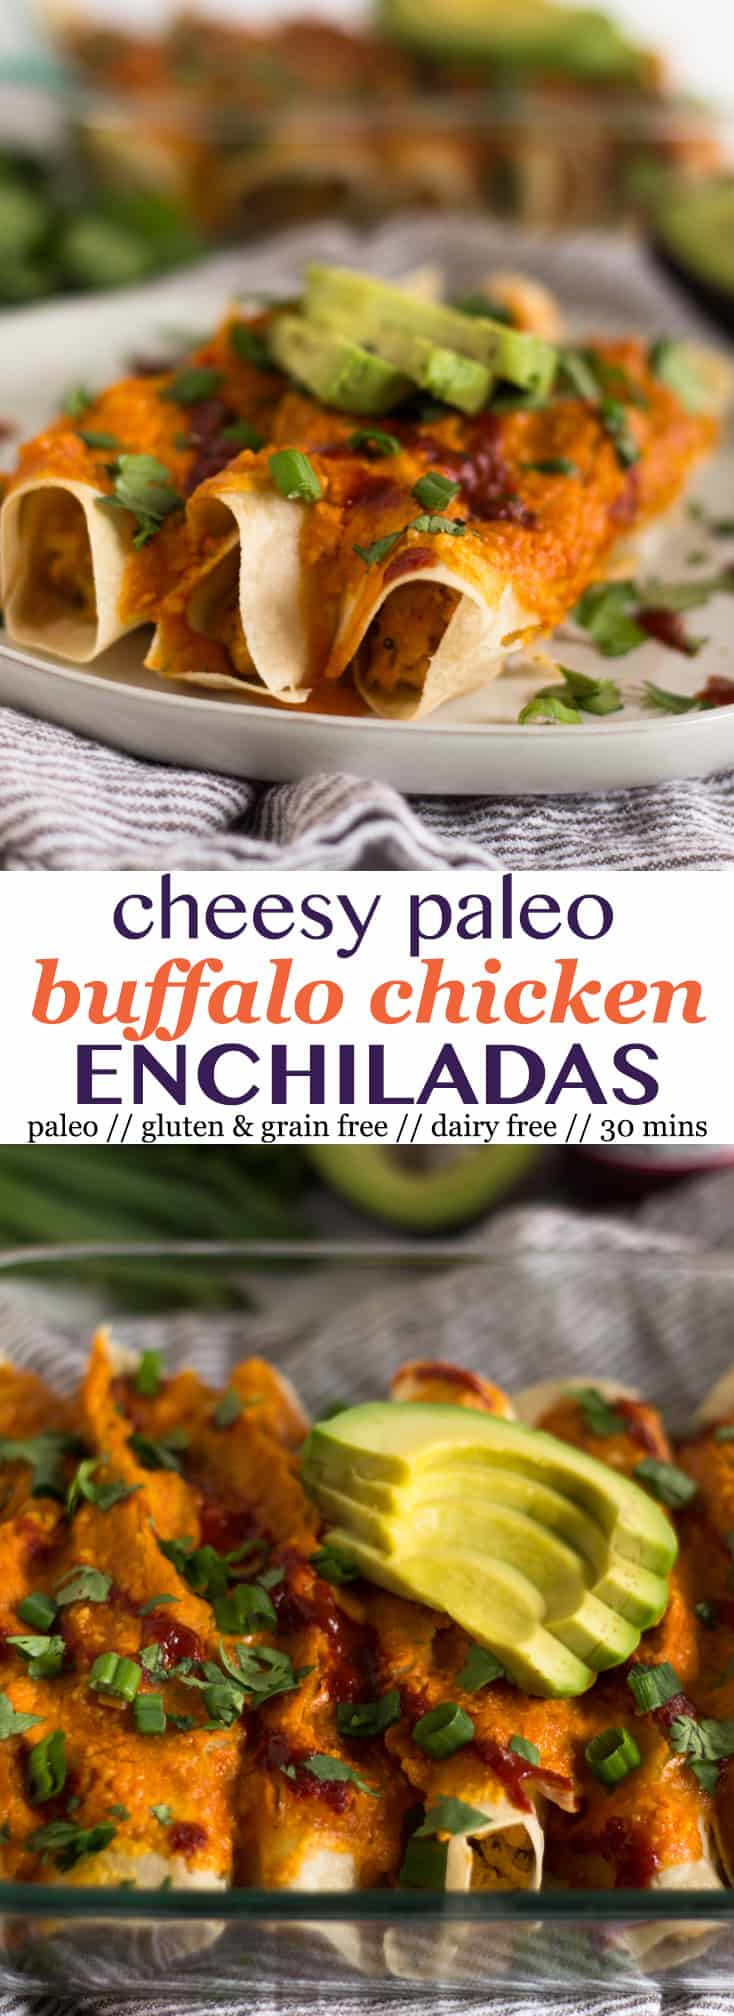 A comforting and healthy spin on enchiladas, theseCheesy Paleo Buffalo Chicken Enchiladas pack the flavor while being gluten, grain, and dairy free! - Eat the Gains